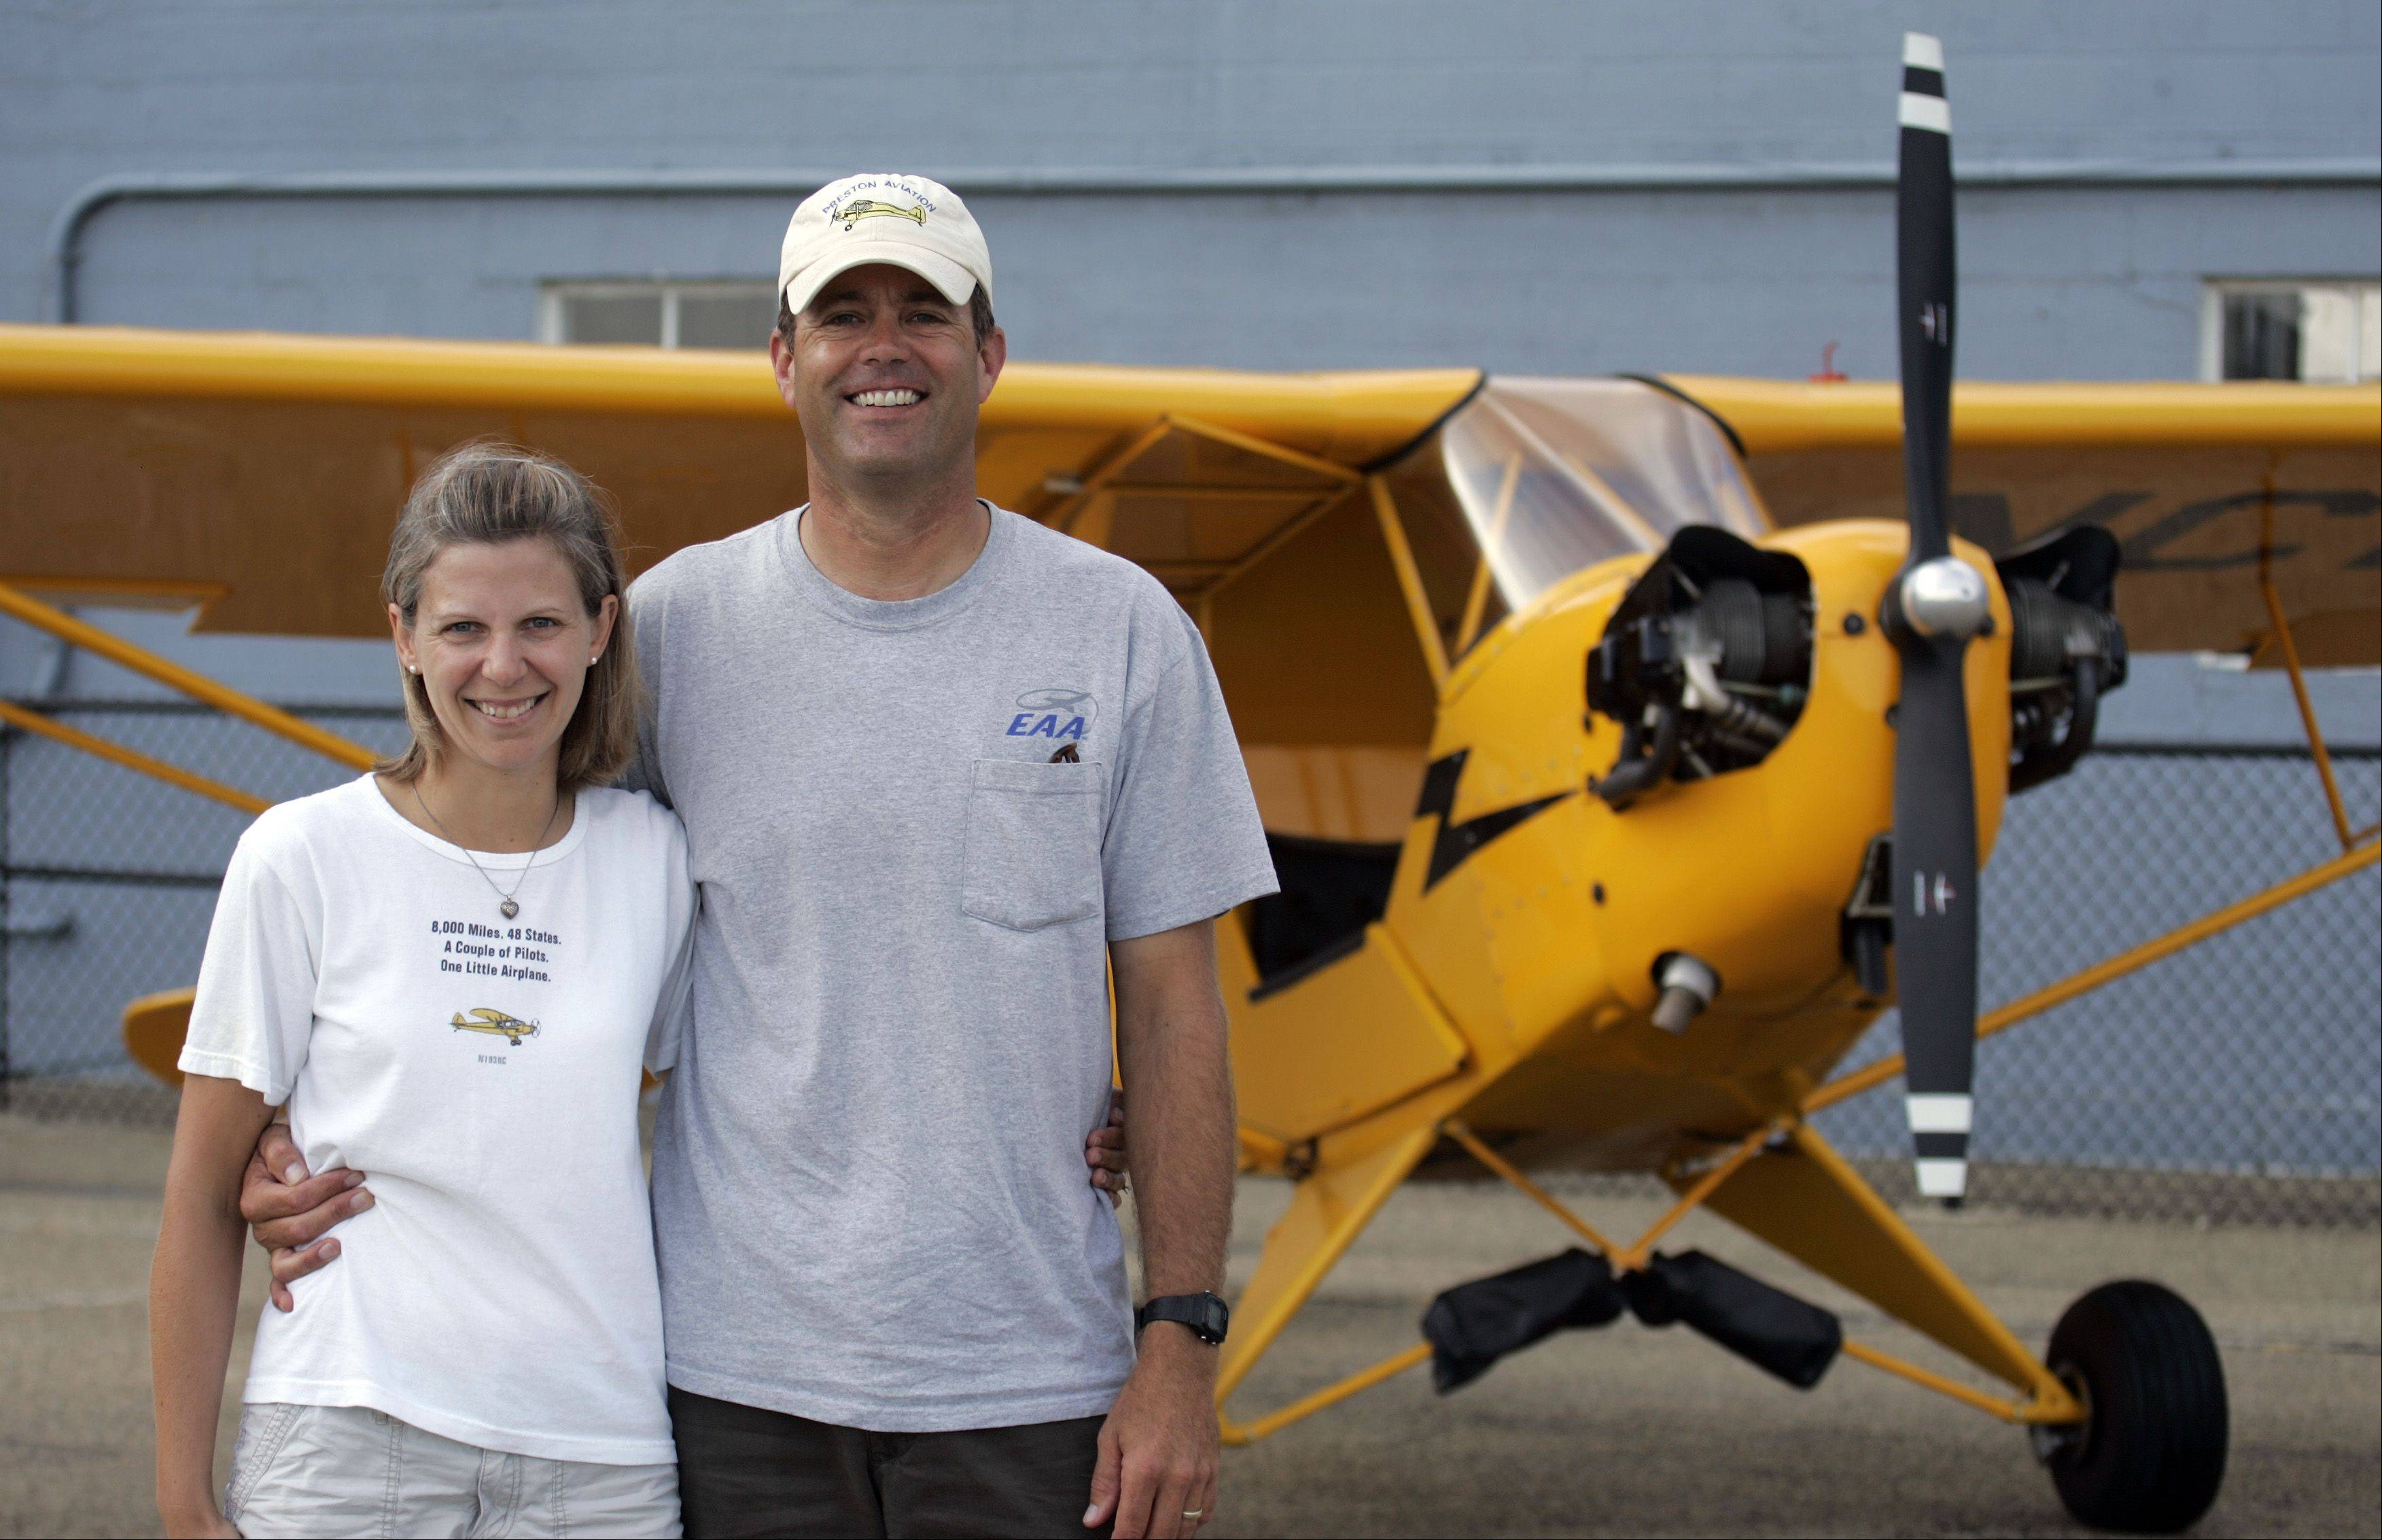 Former Island Lake resident Dana Holladay and his wife, Meredith Tcherniavsky, live in Maryland and are flying their 1938 Piper J-3 Cub around the country.